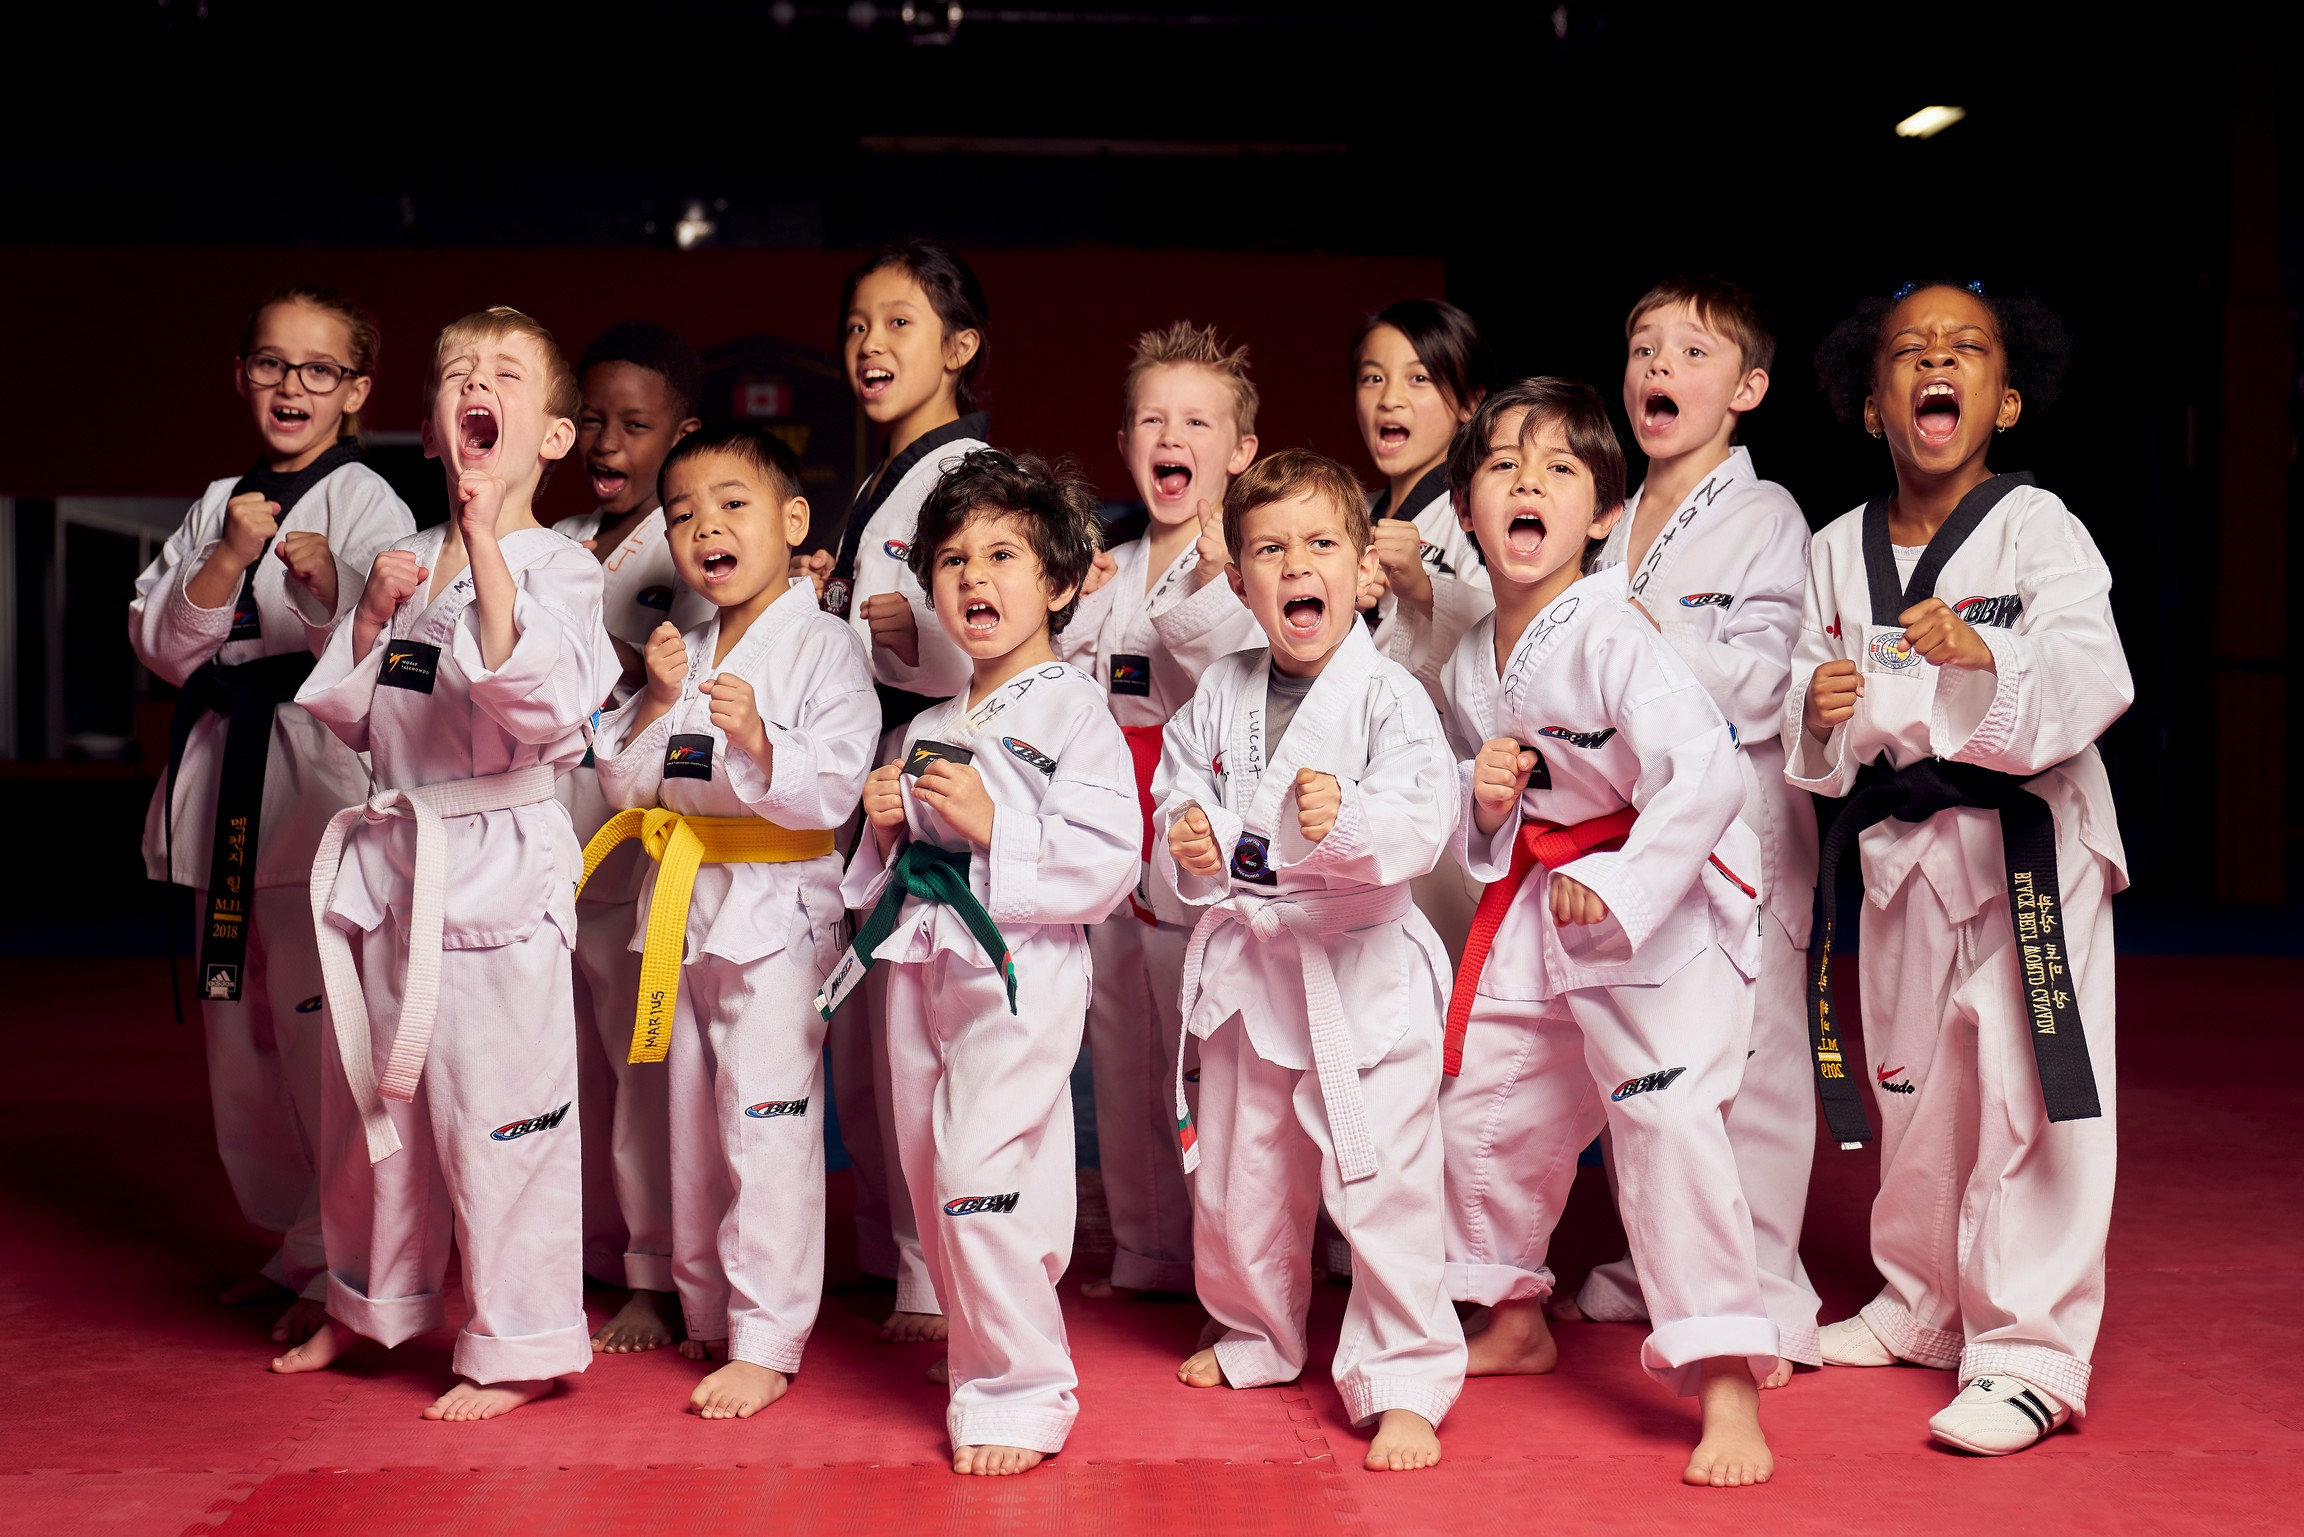 Children Taekwondo Team